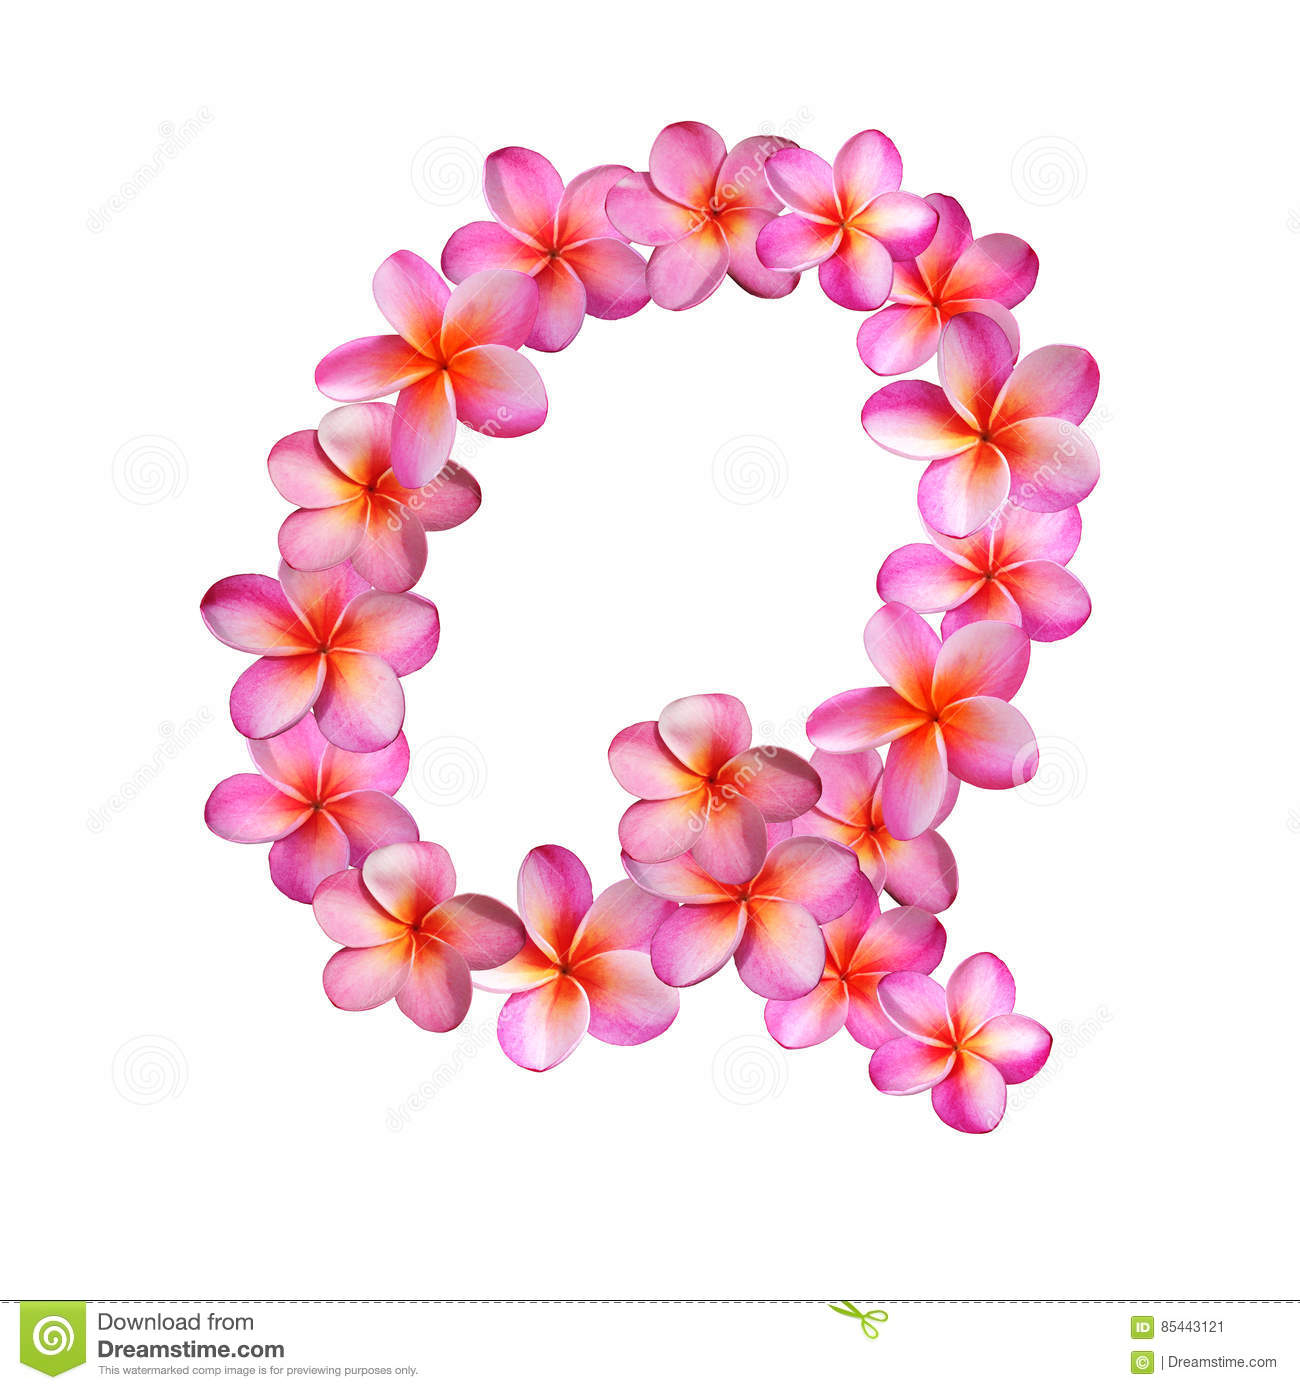 Pink Plumeria Flowers Letter Q Stock Illustration - Illustration of ...